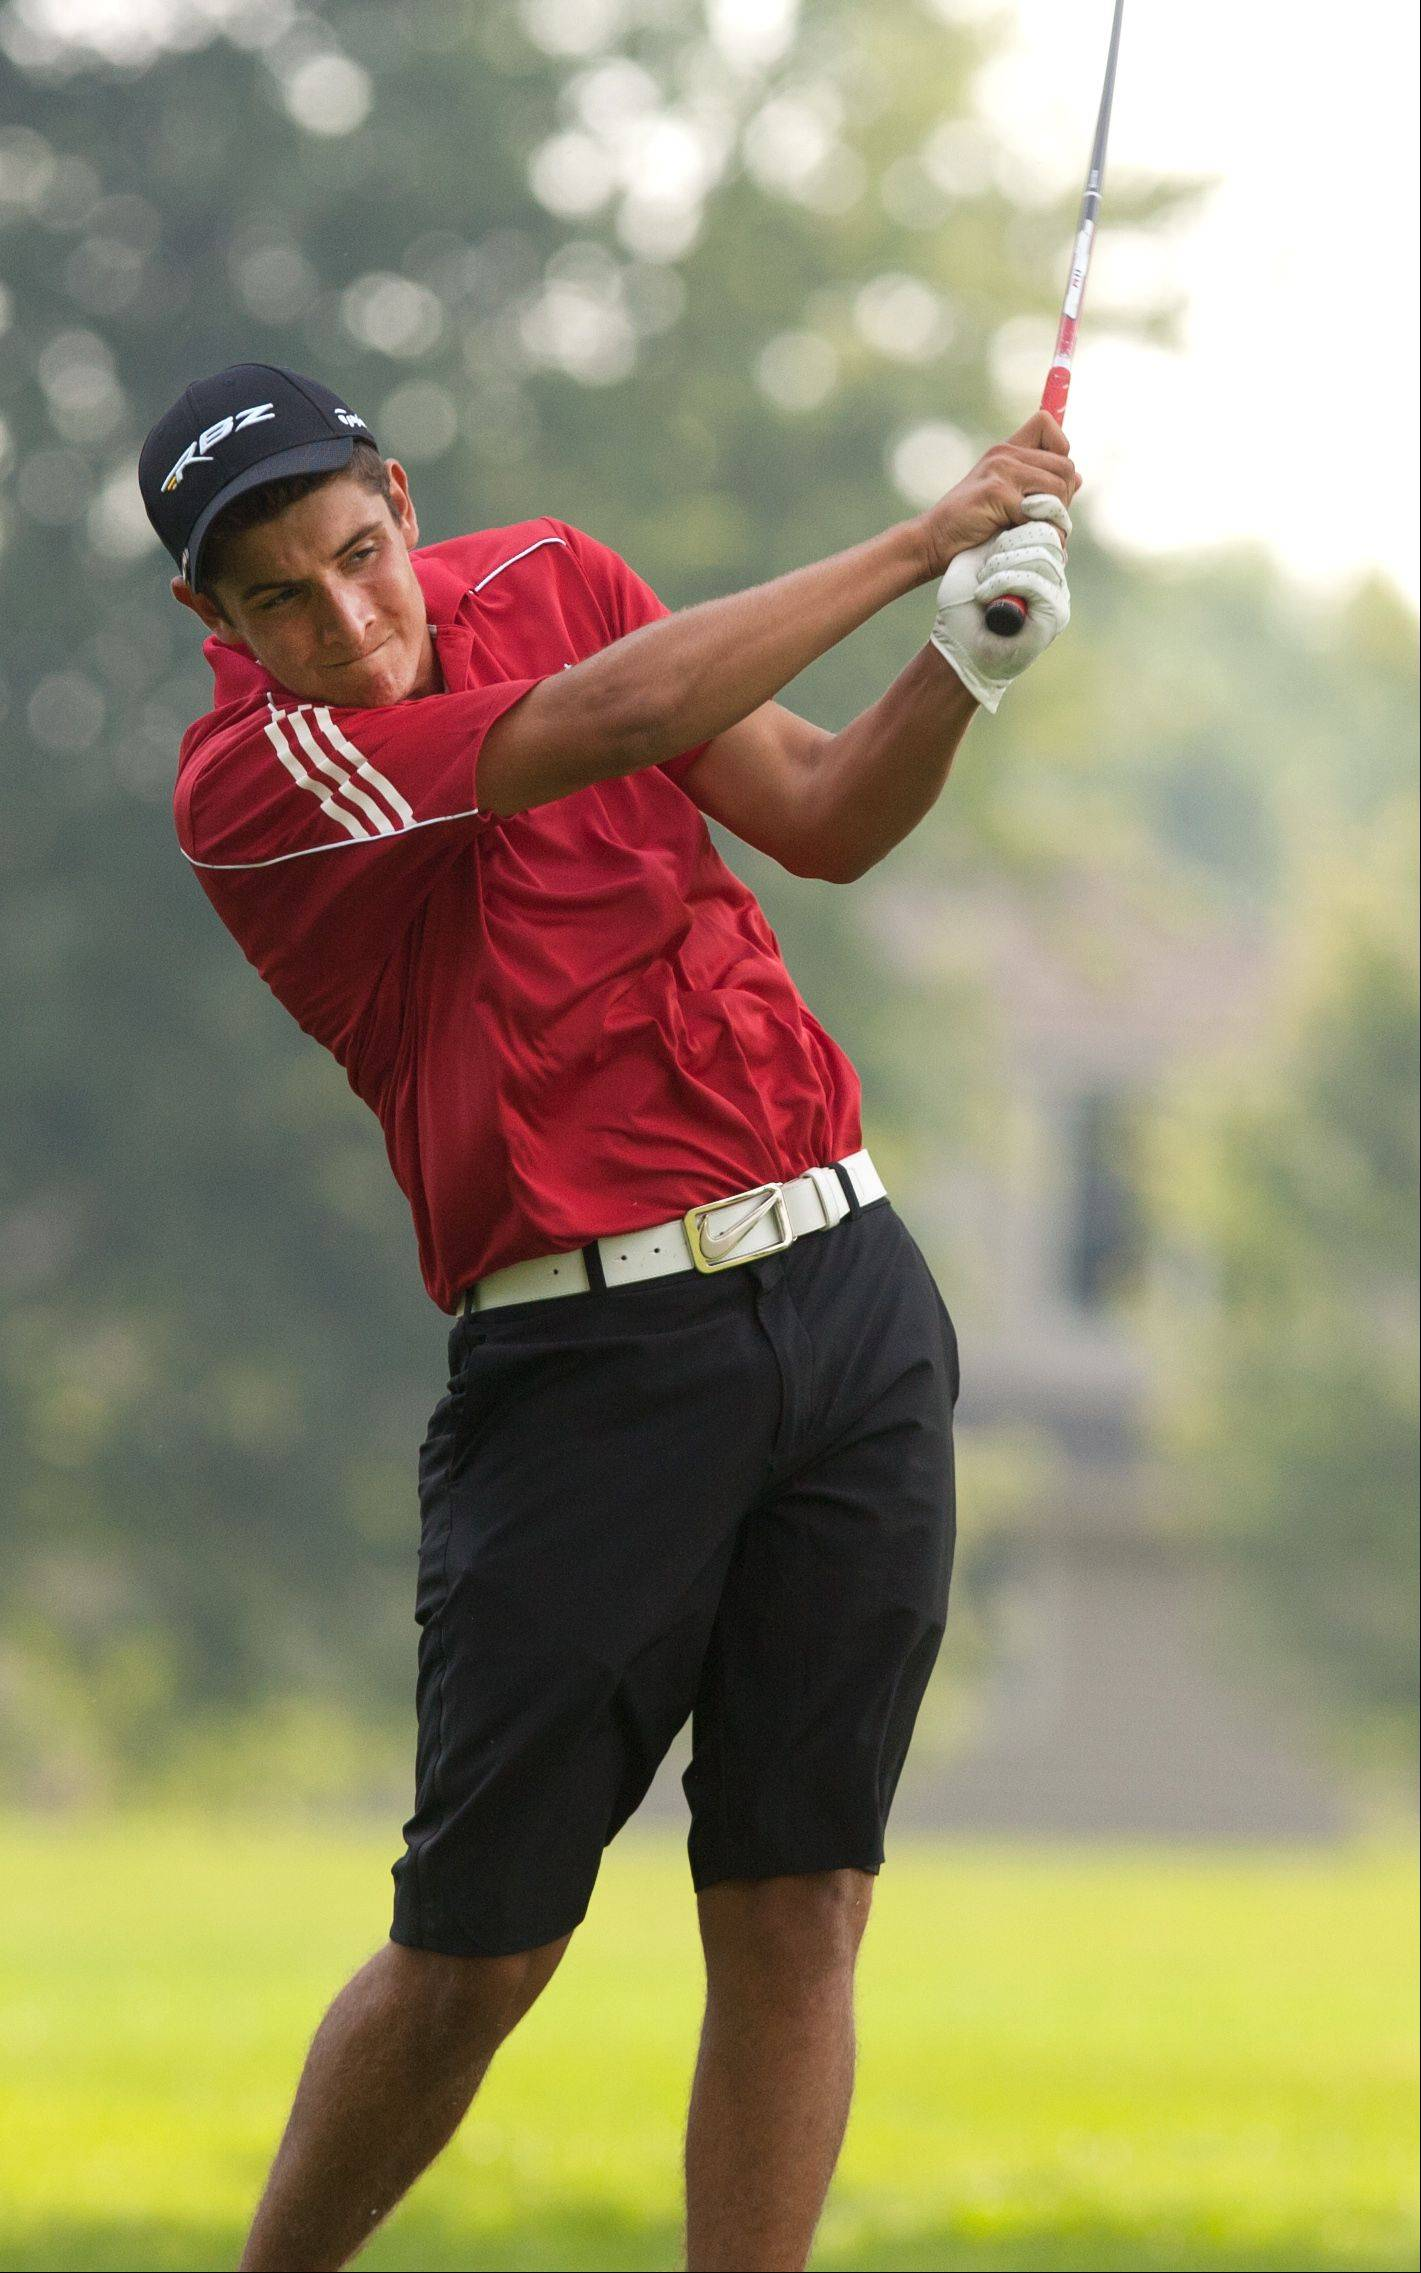 Alex Bassetto of Benet tees off during the 2013 Vern McGonagle Memorial boys and girls golf invitational at the Naperville Country Club.